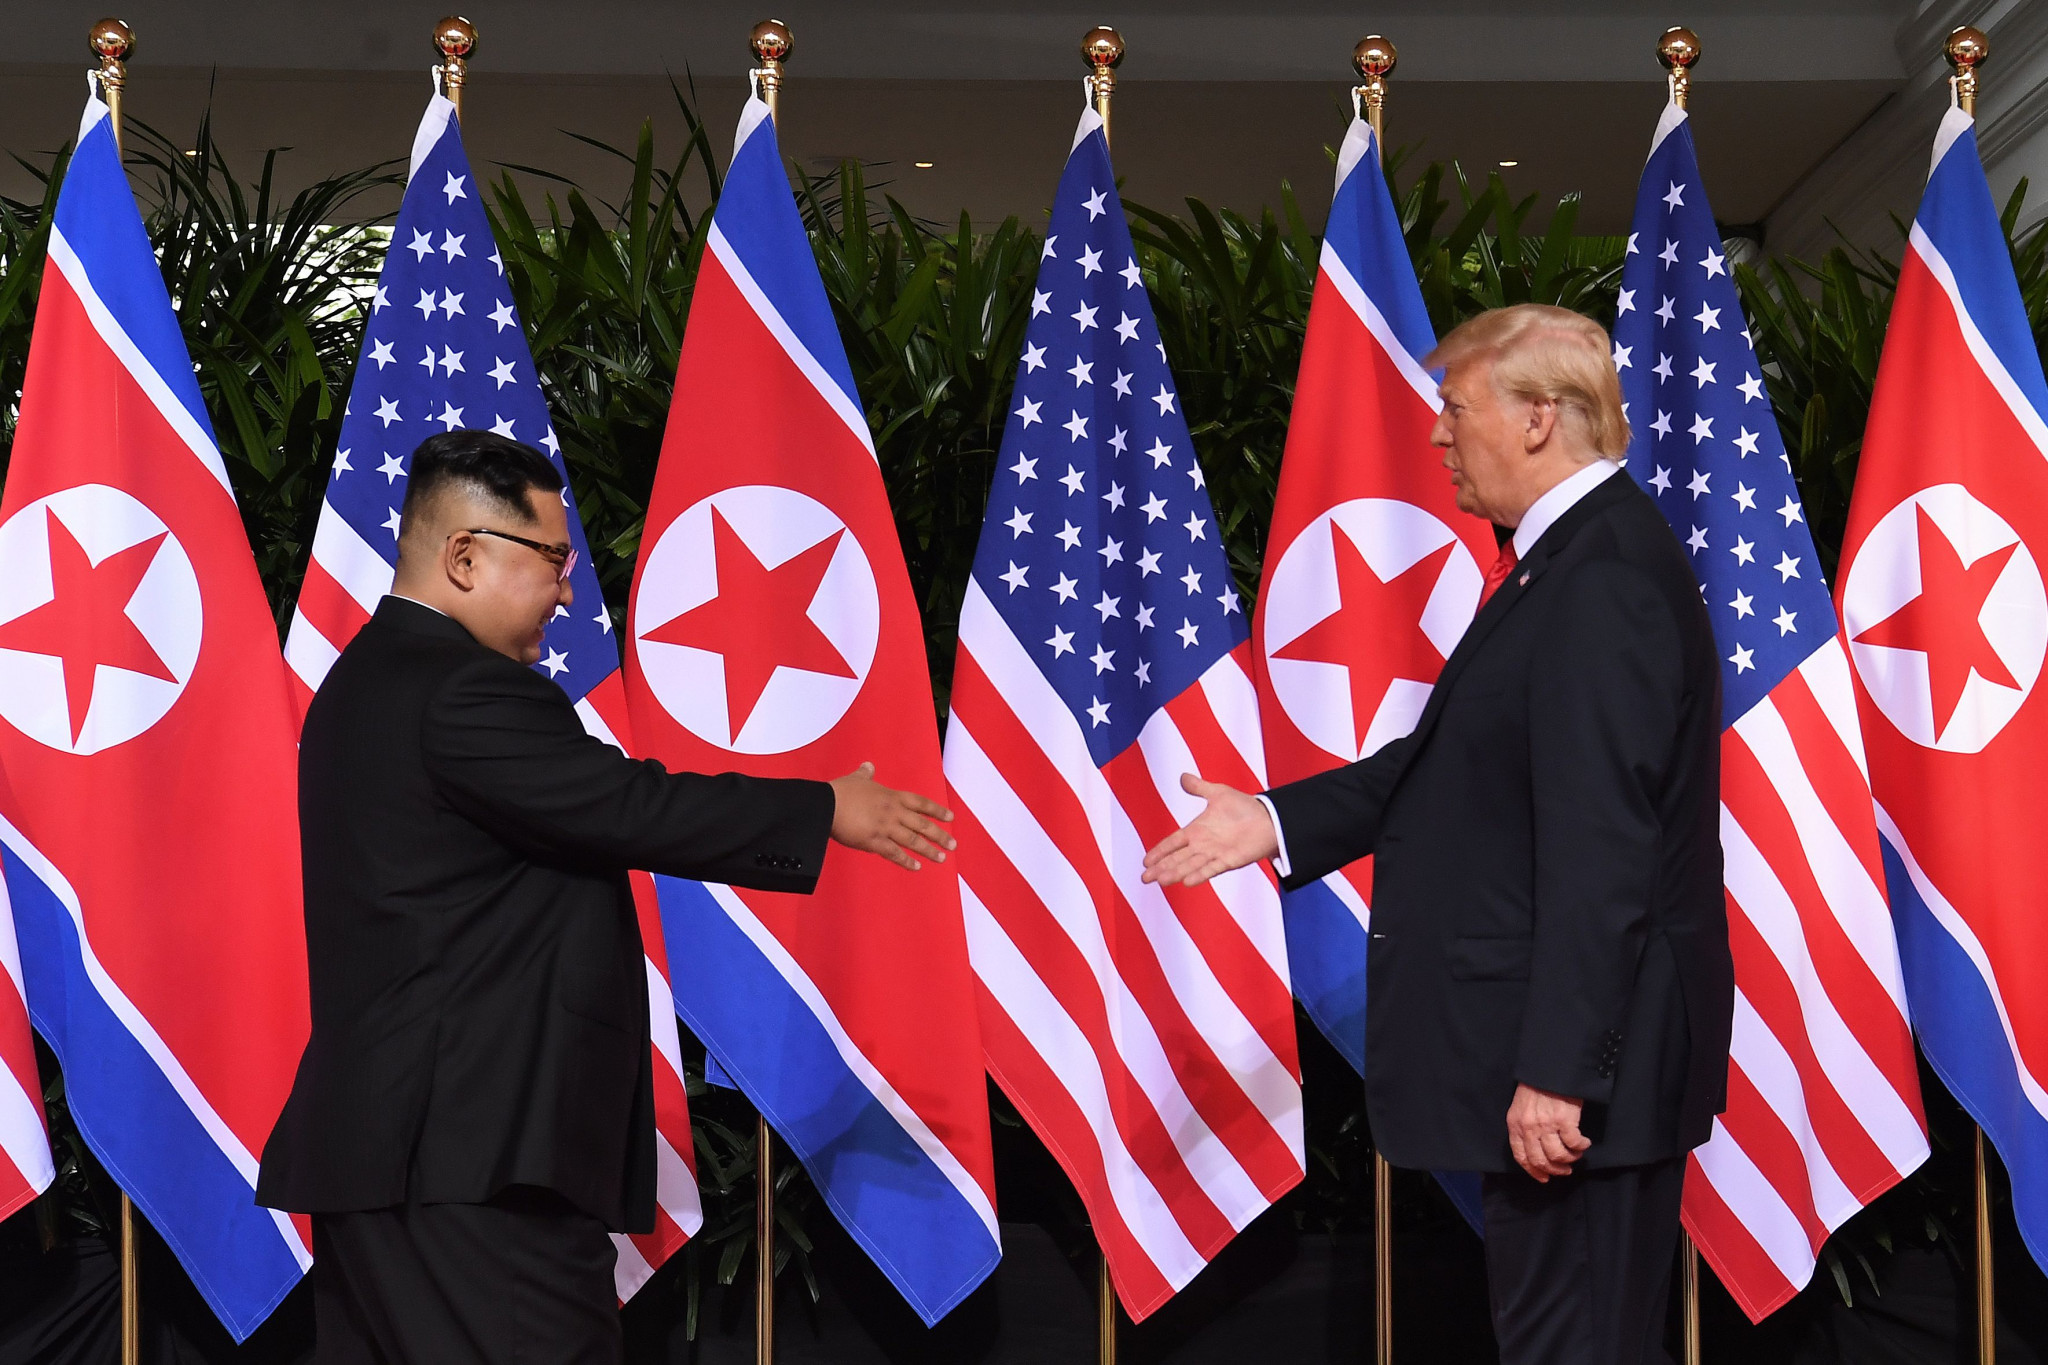 Donald Trump and Kim Jong-un's summit began with a historic handshake ©Getty Images